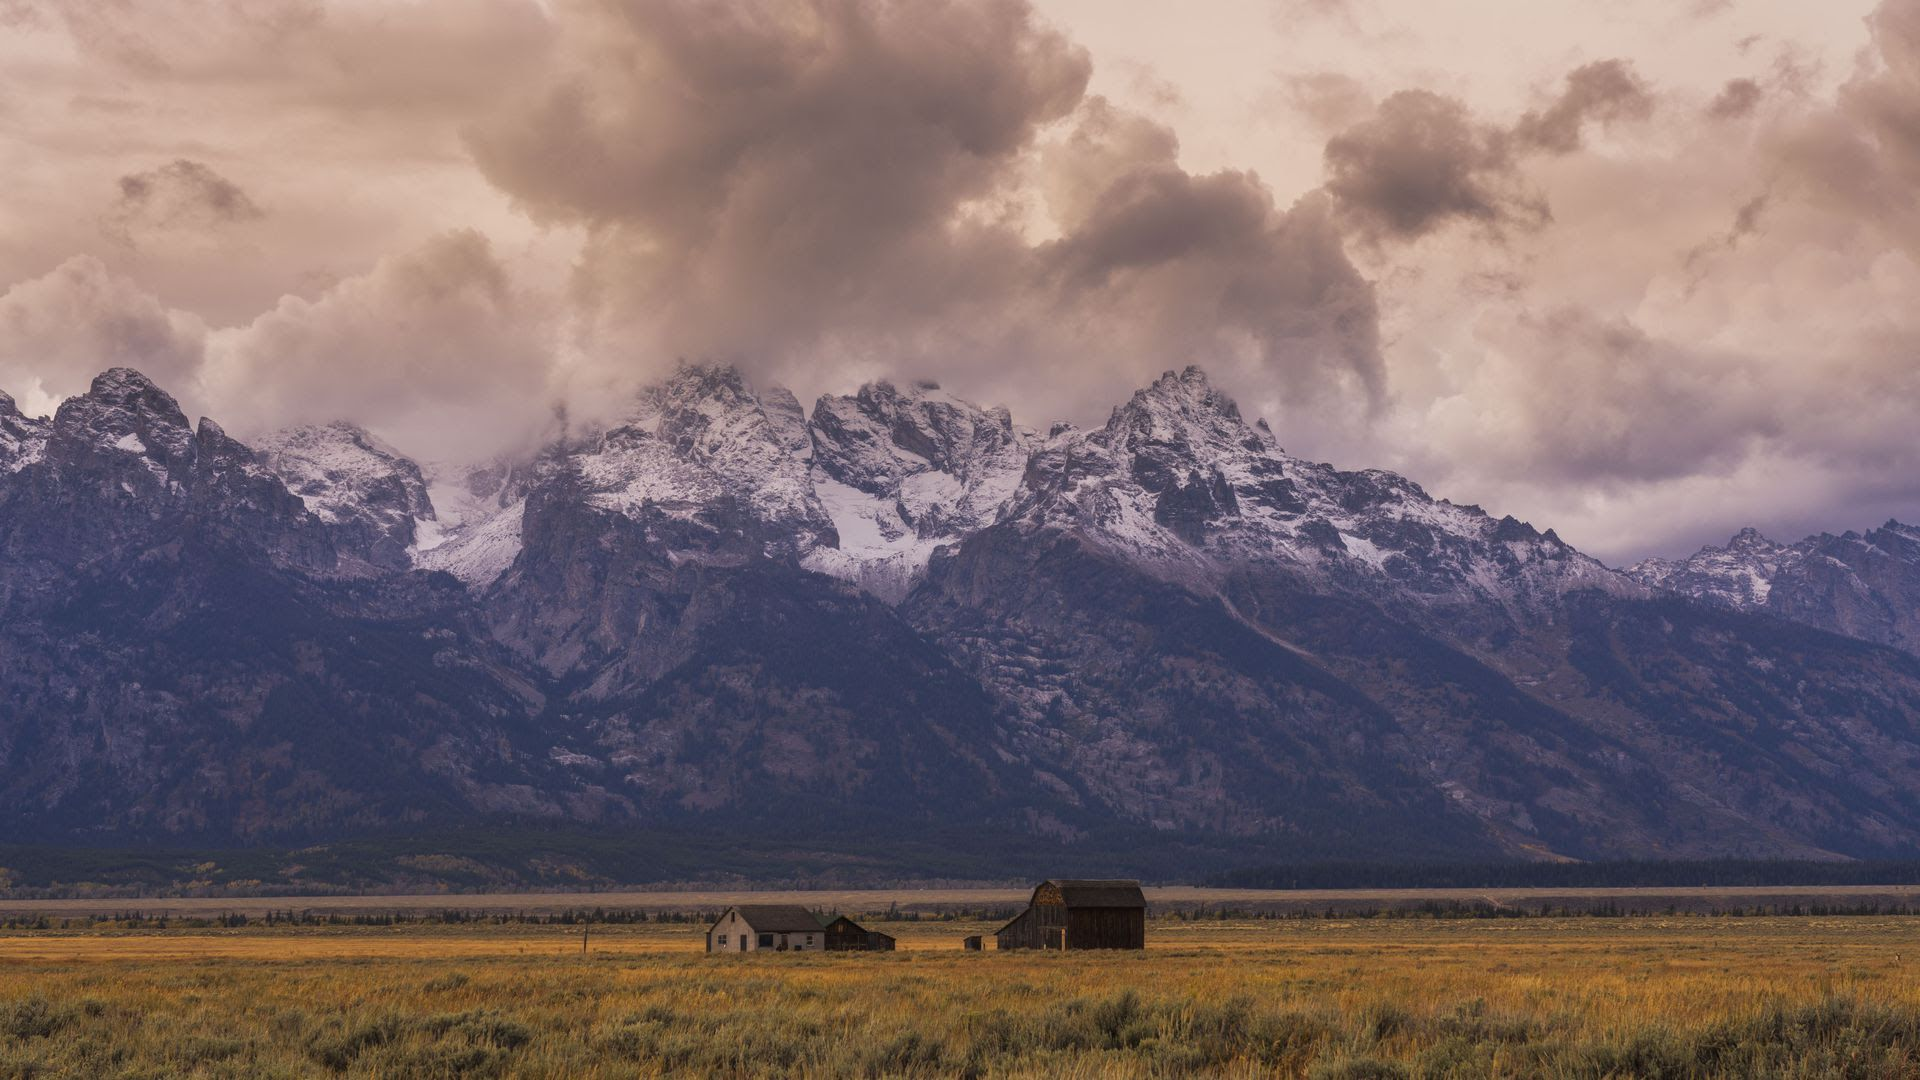 A cabin in front of a mountain range in Grand Teton National Park, Wyoming.